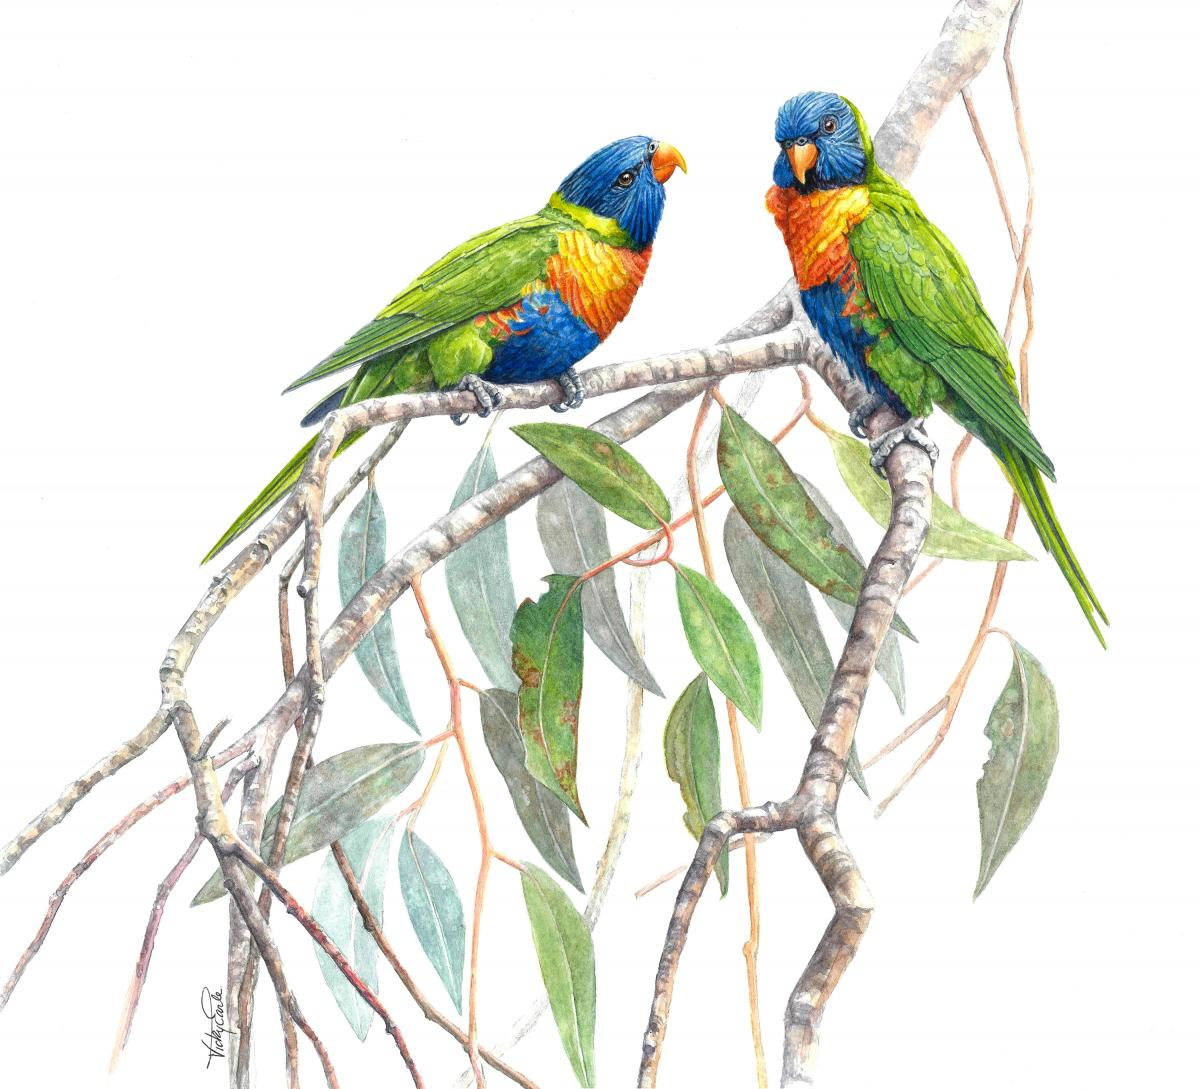 Rainbow Lorikeets | Wallhanging by Vicky Earle | Artists for Conservation 2021